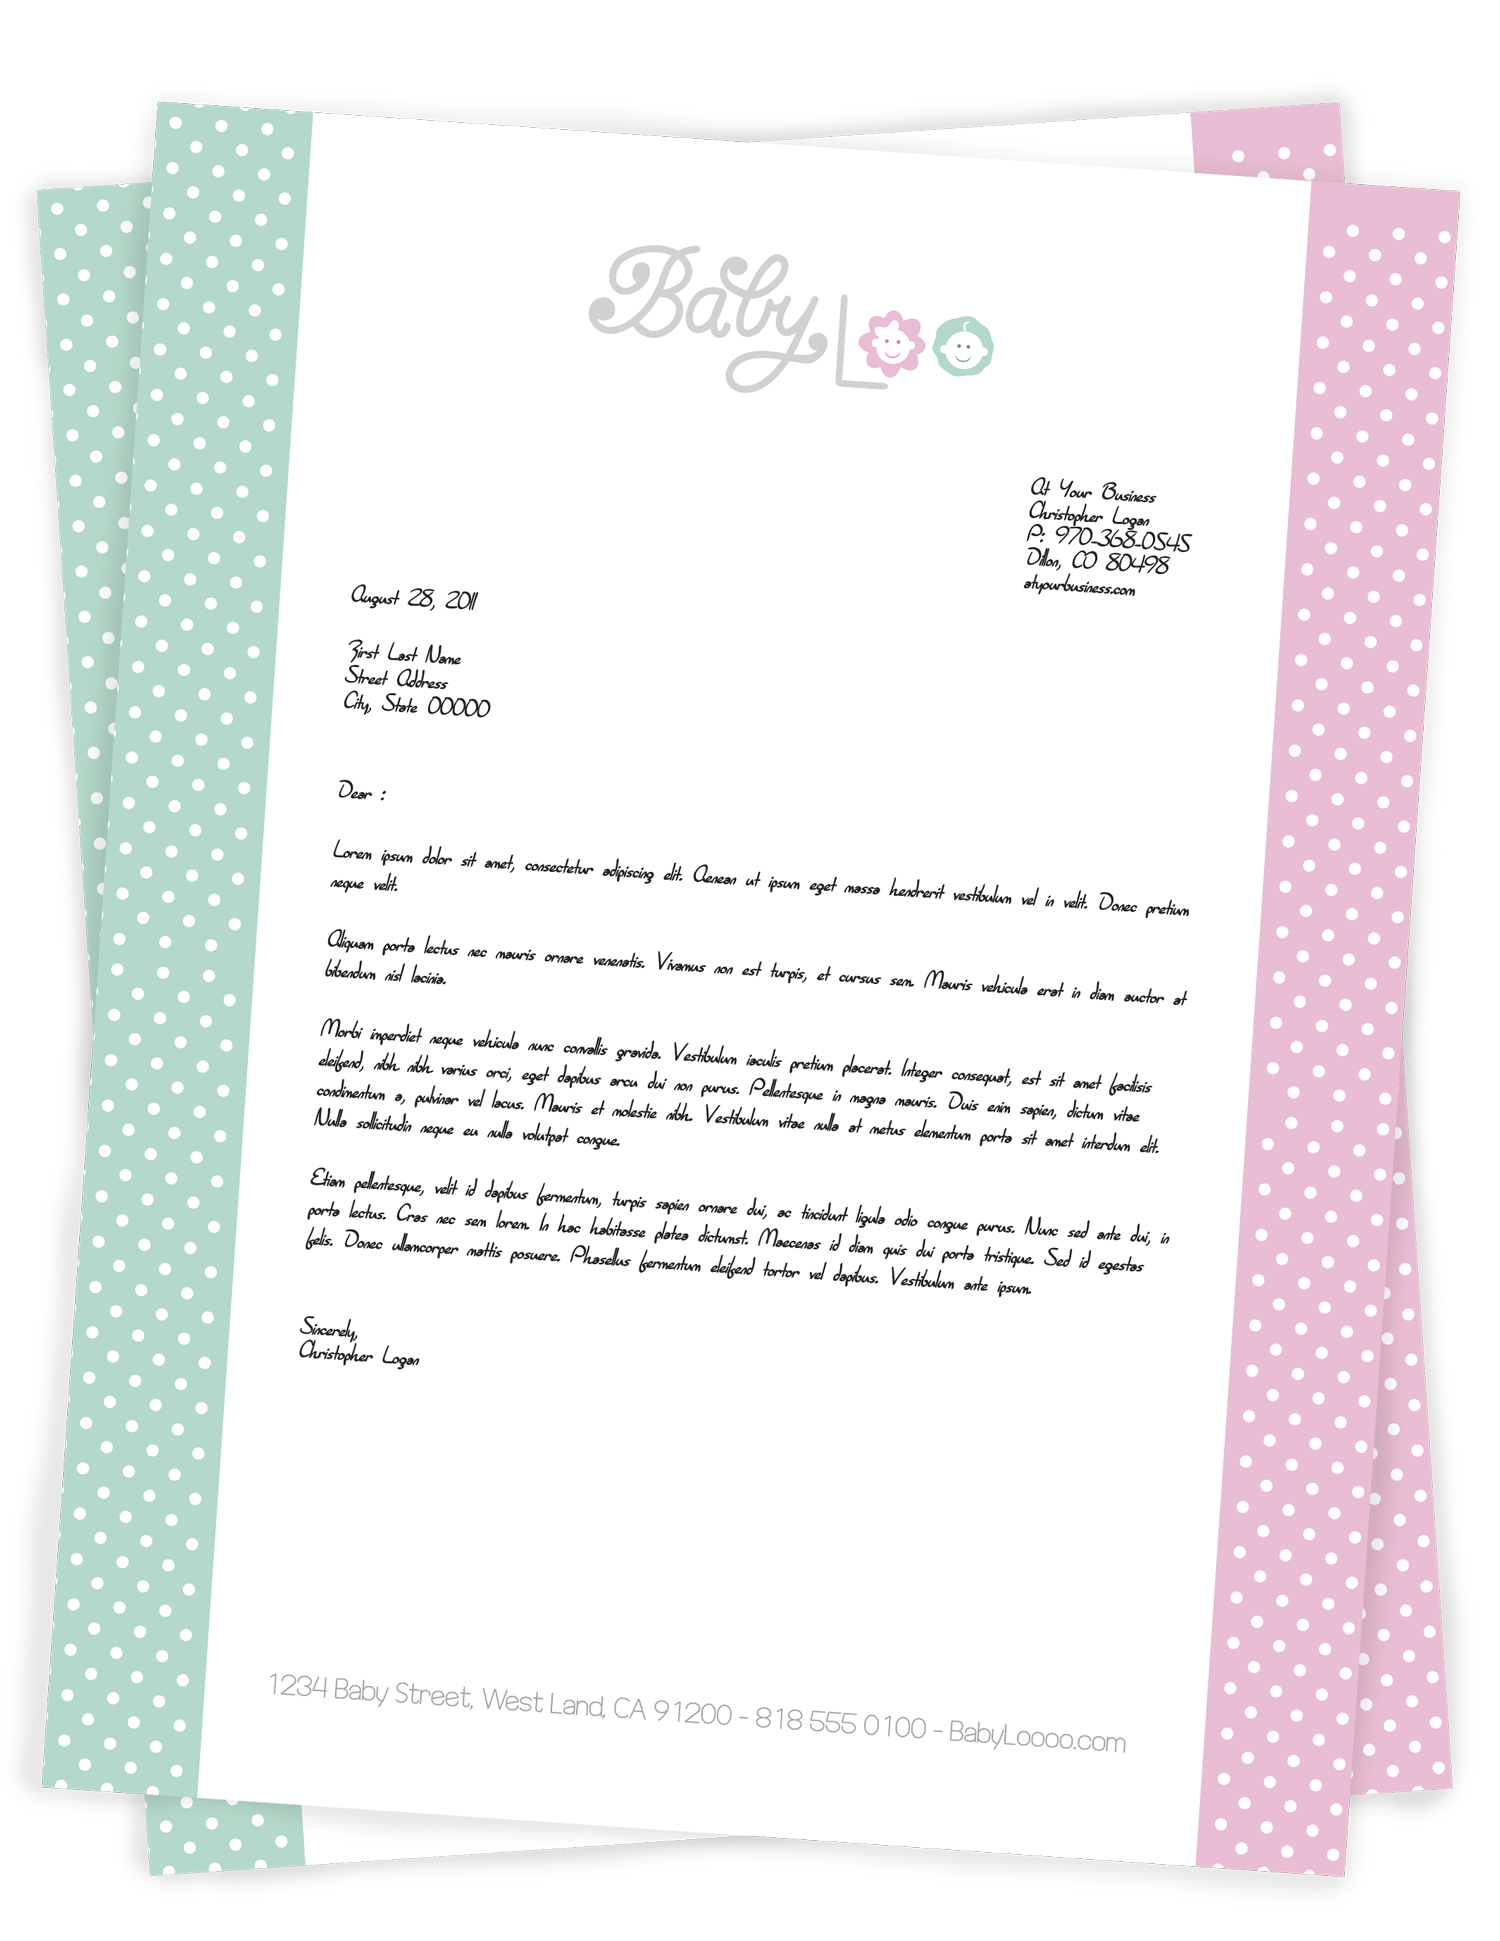 letterhead full color digital